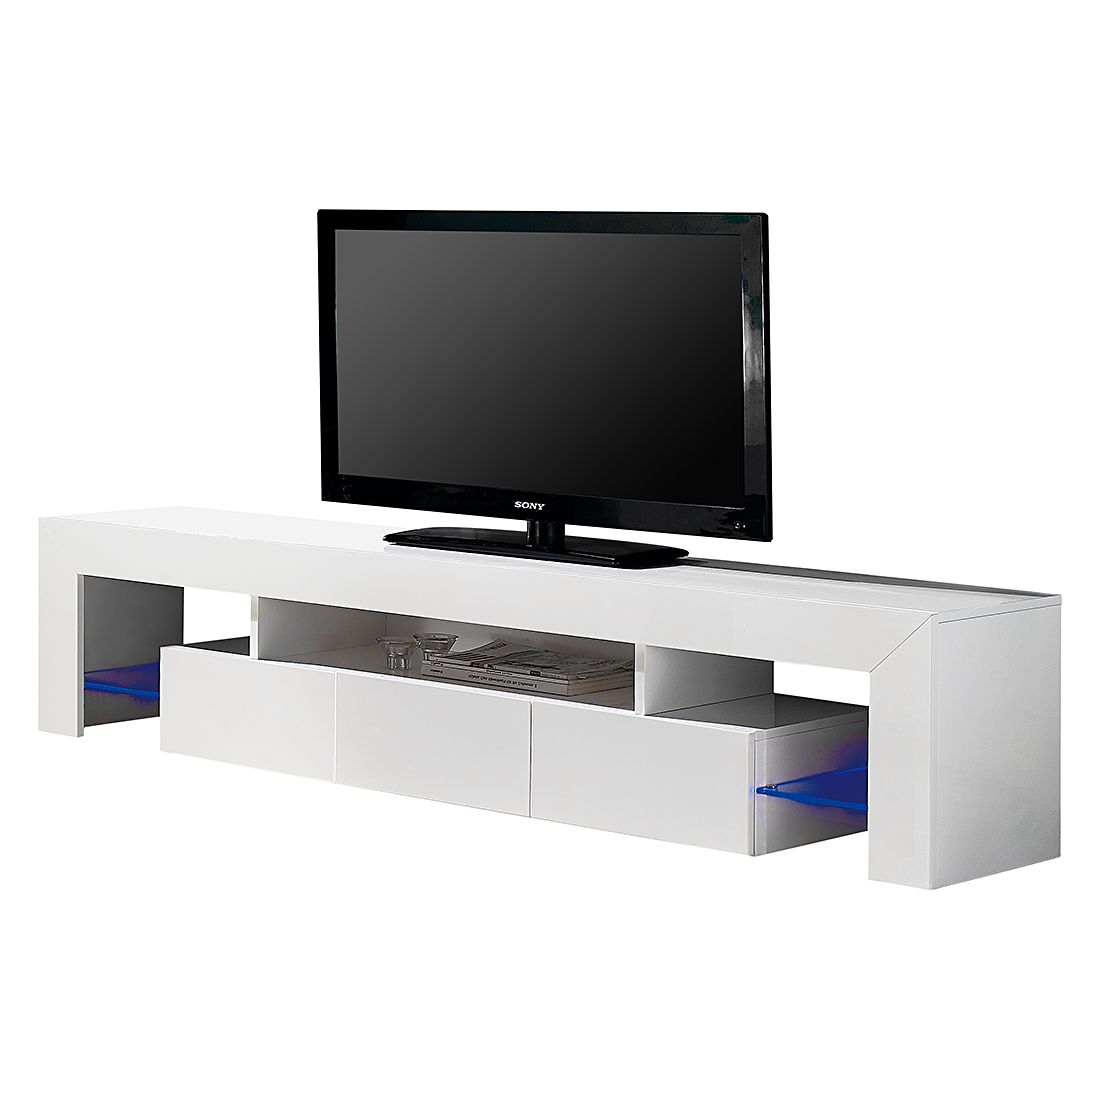 meuble tv meuble tv blanc 180 cm meuble tv blanc 180 cm trouvez meuble tv blanc 180 cm parmis. Black Bedroom Furniture Sets. Home Design Ideas